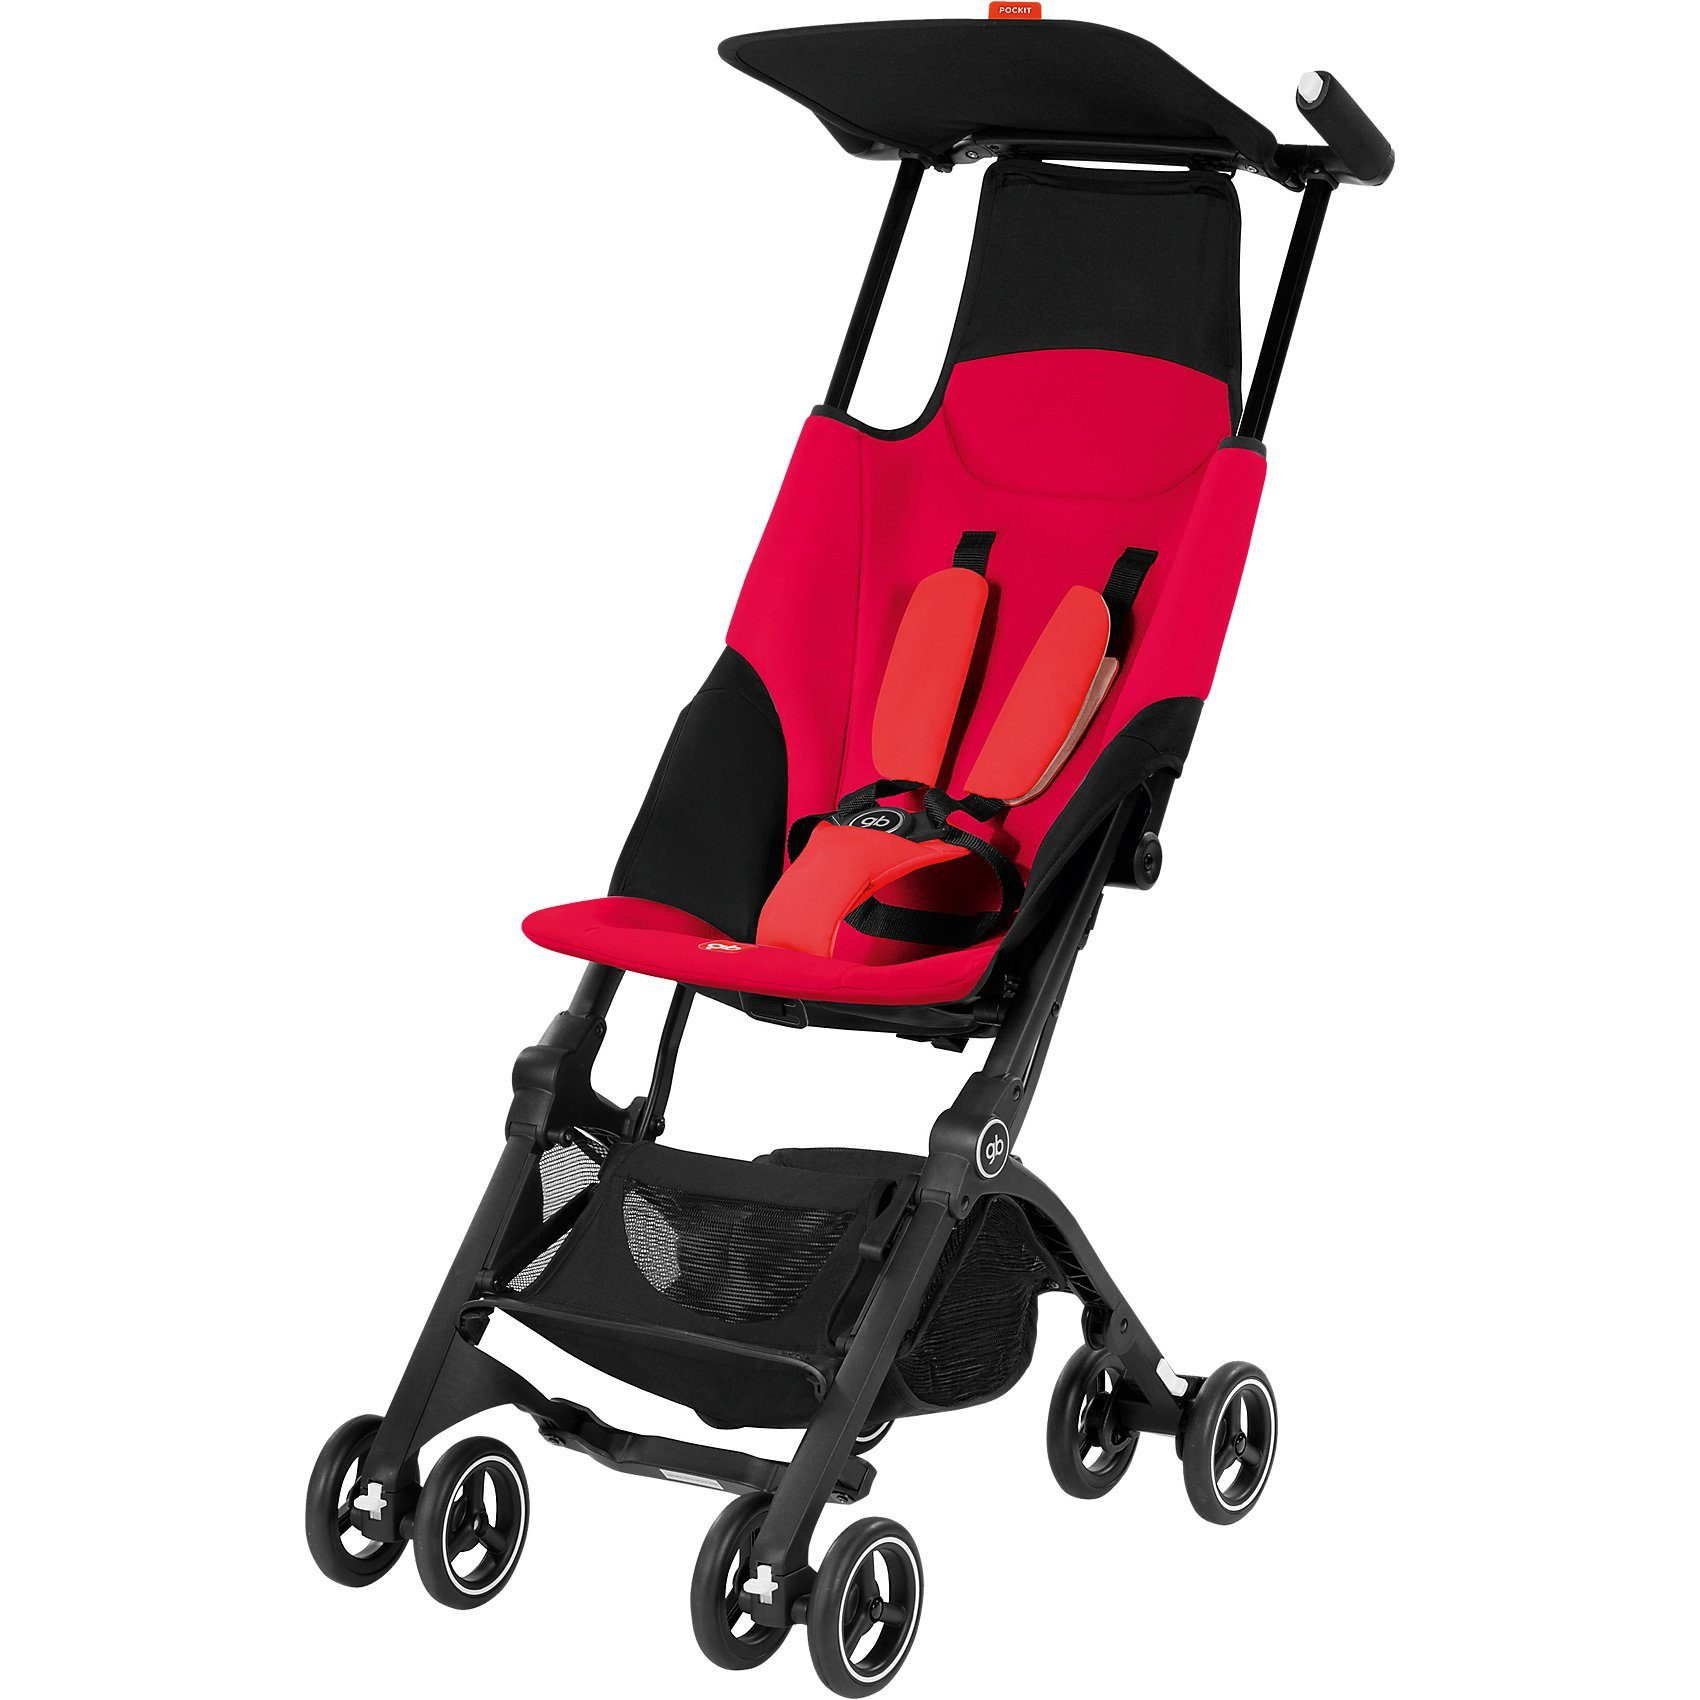 Goodbaby Buggy Pockit, Cherry Red-Red, 2018